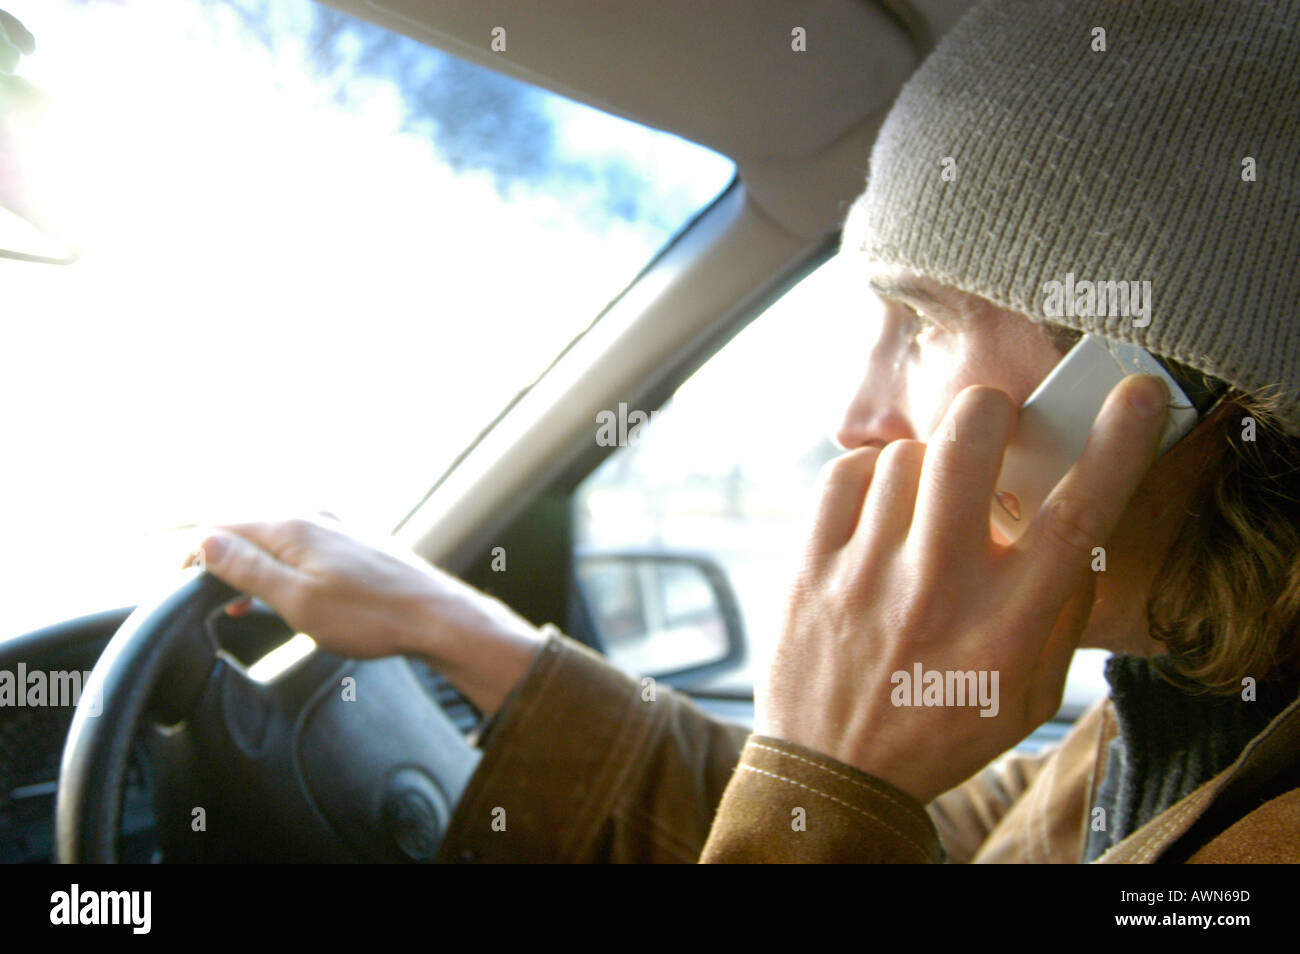 Young man illegally driving car while talking on mobile phone, England, UK - Stock Image